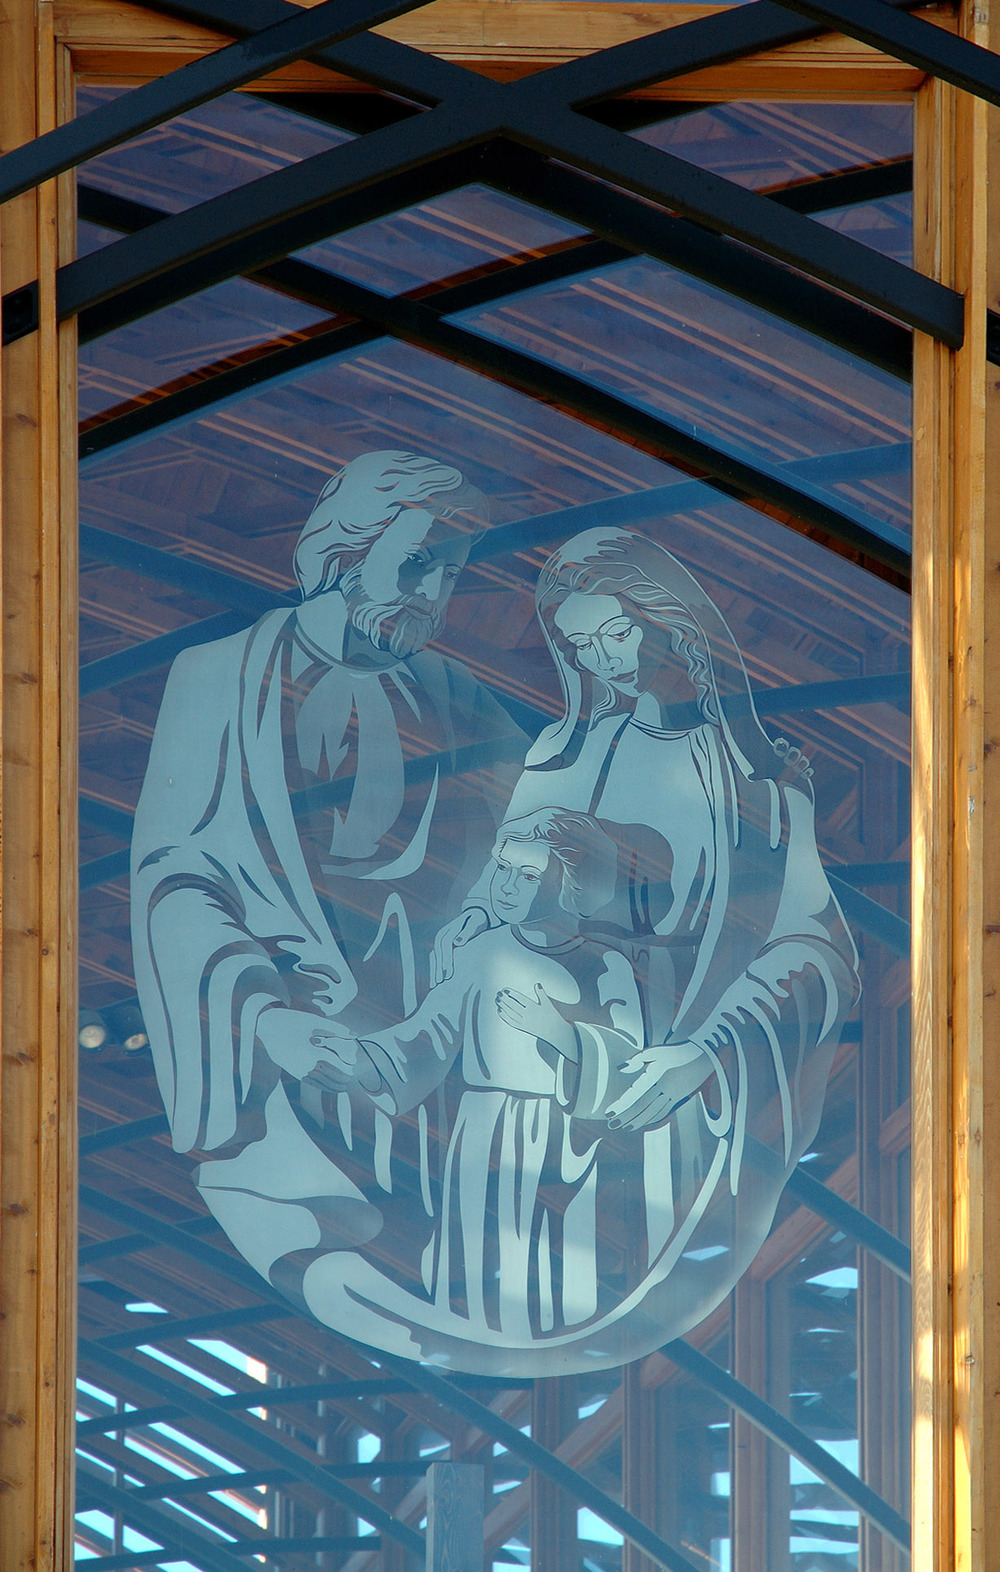 etched glass.jpg